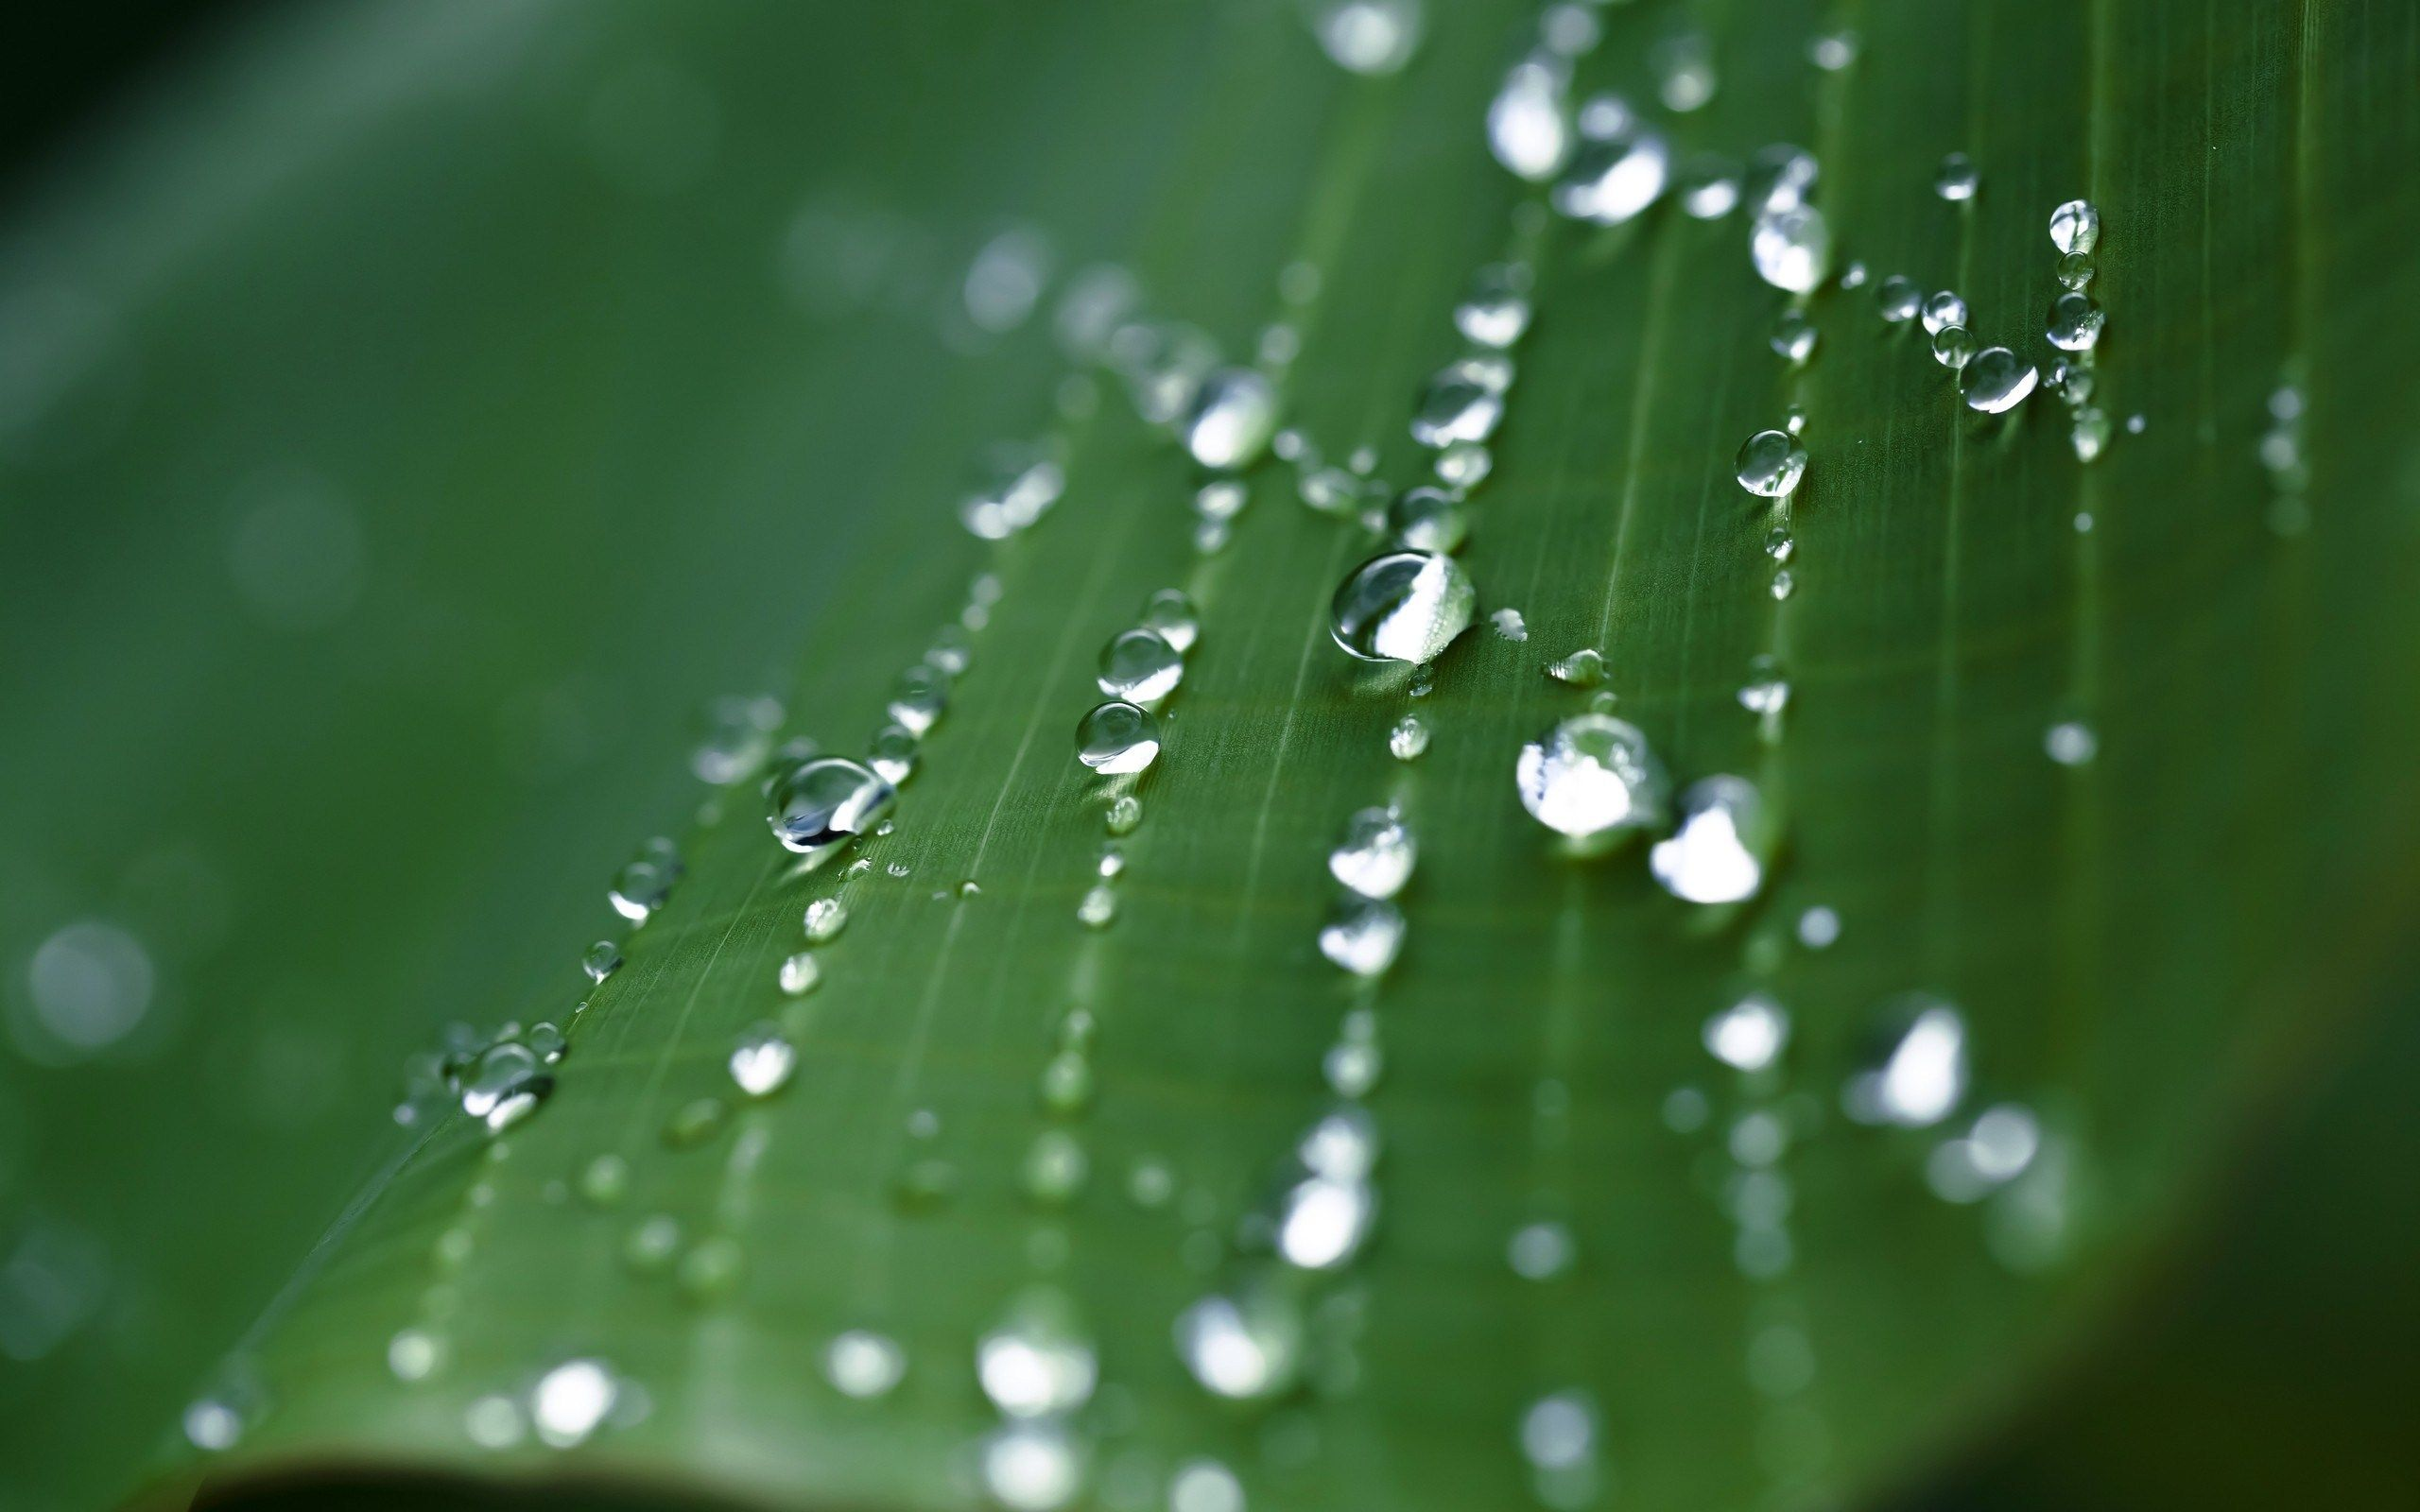 Leaf Macro Strings Of Water Droplets Wide Hd Wallpaper